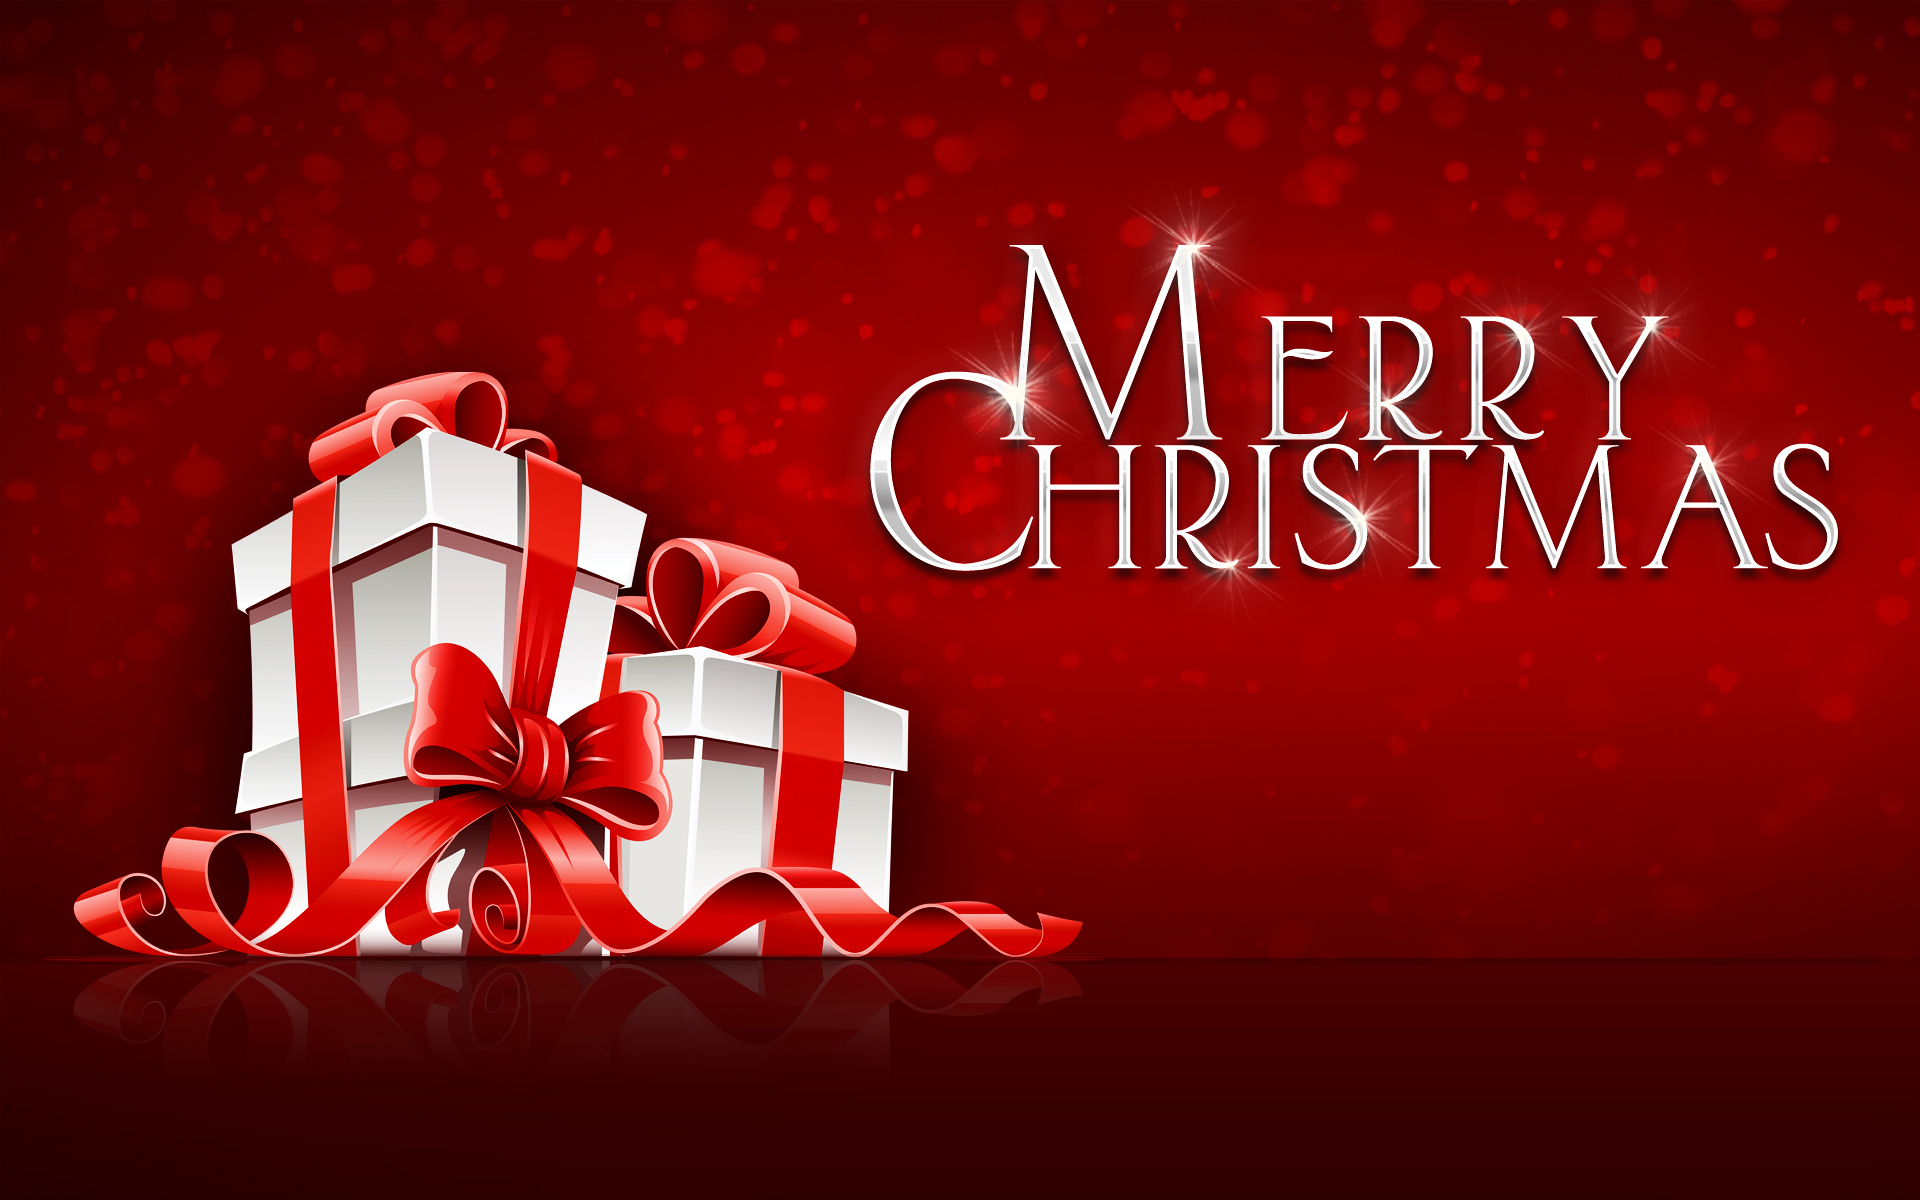 Holiday Wishes Quotes Merry Christmas 2017 Images Wishes Quotes Pictures Greetings